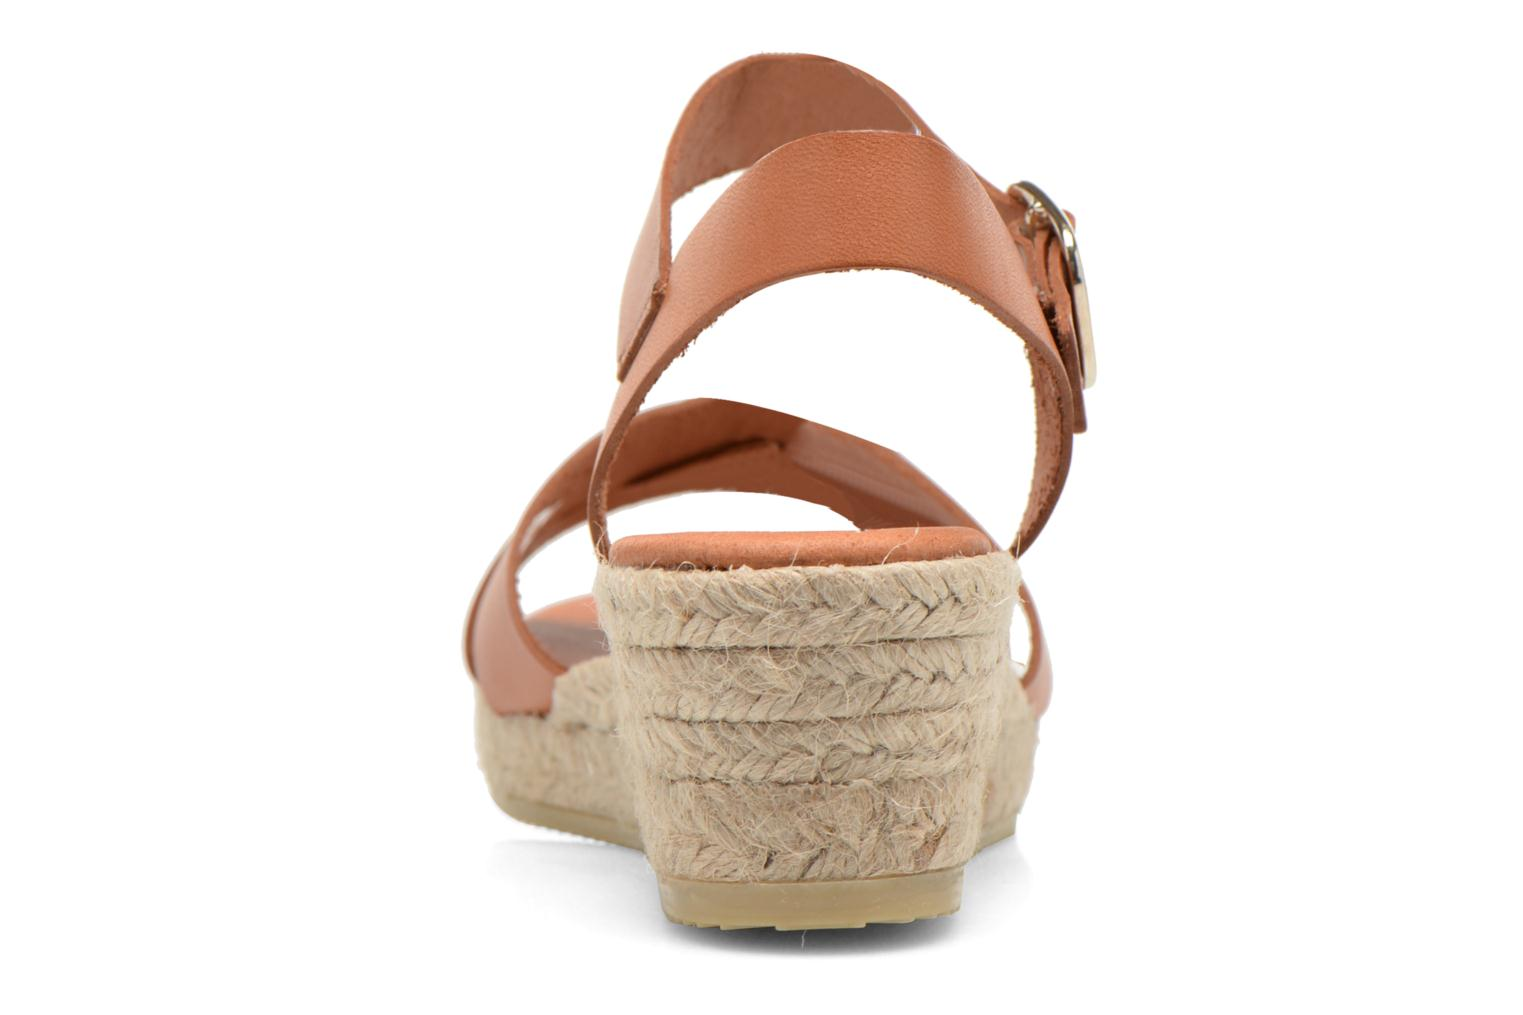 Sandalias Georgia Rose Inof Marrón vista lateral derecha